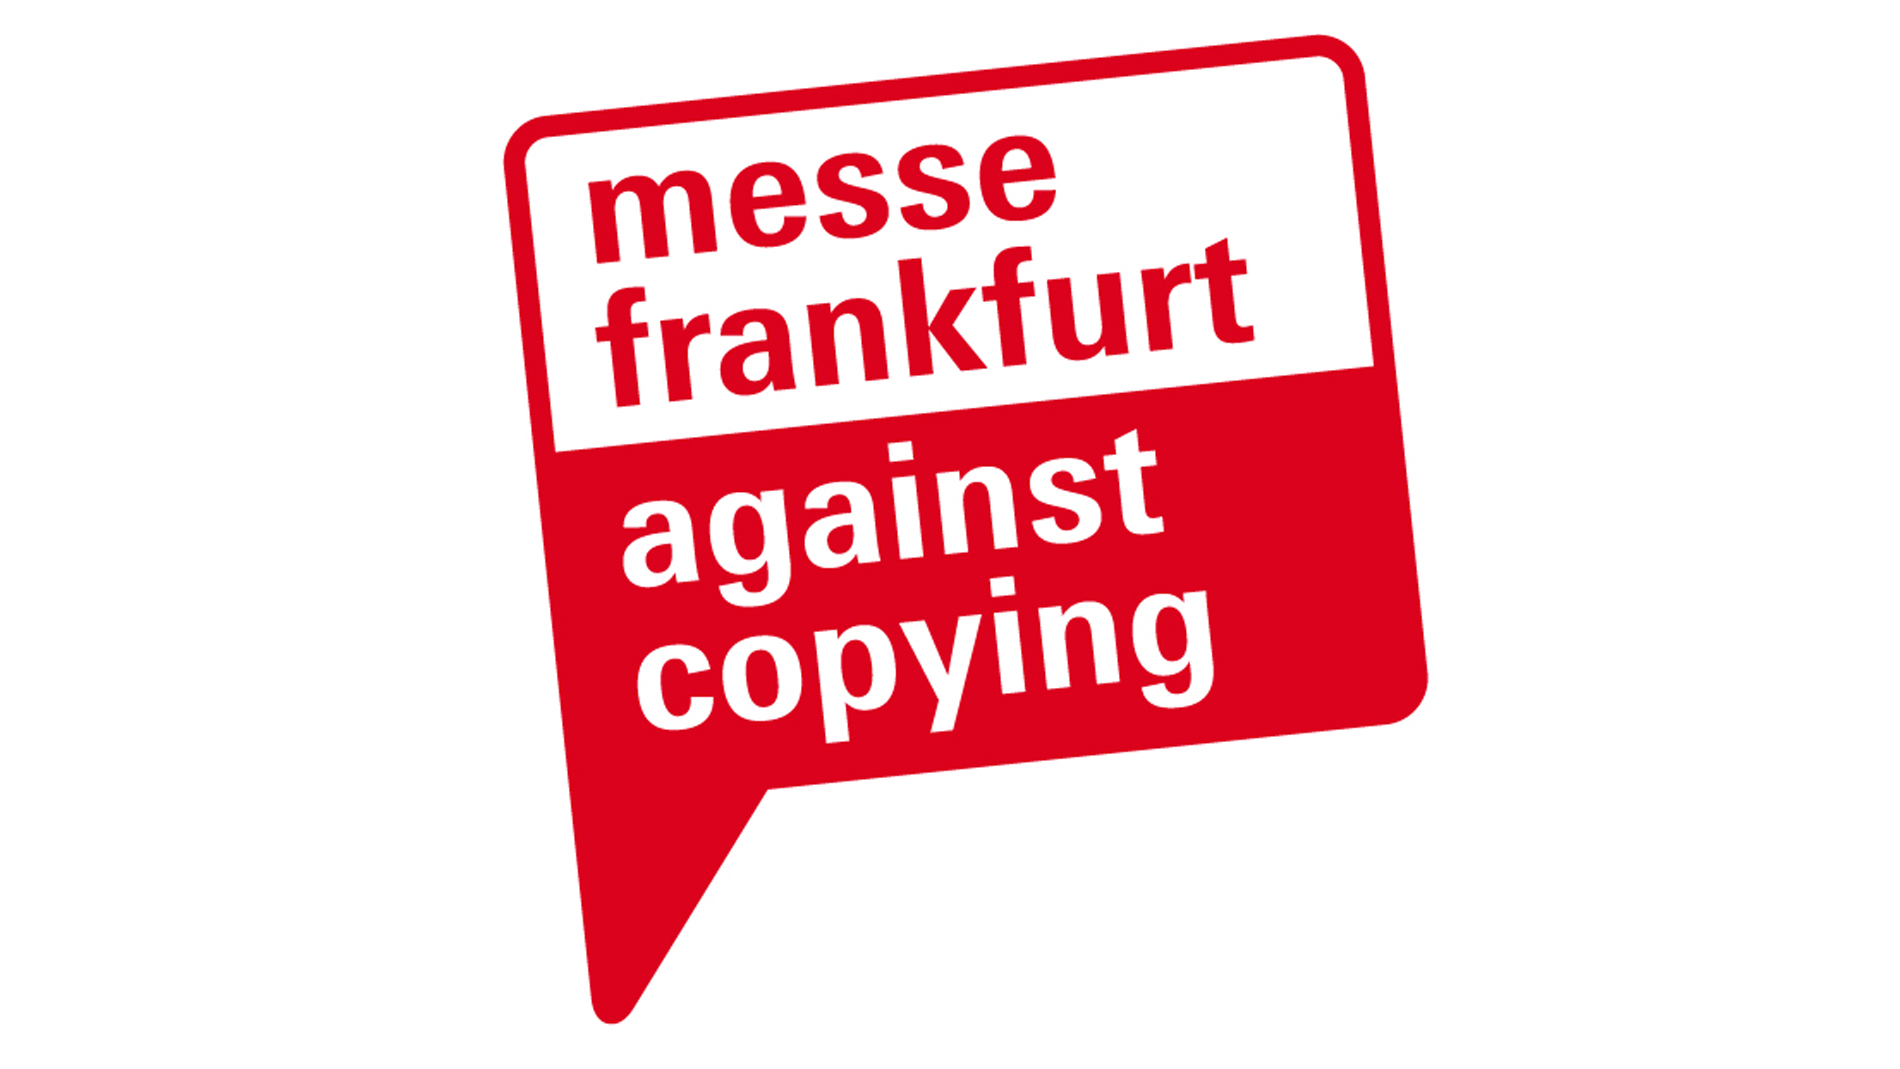 Against Copying